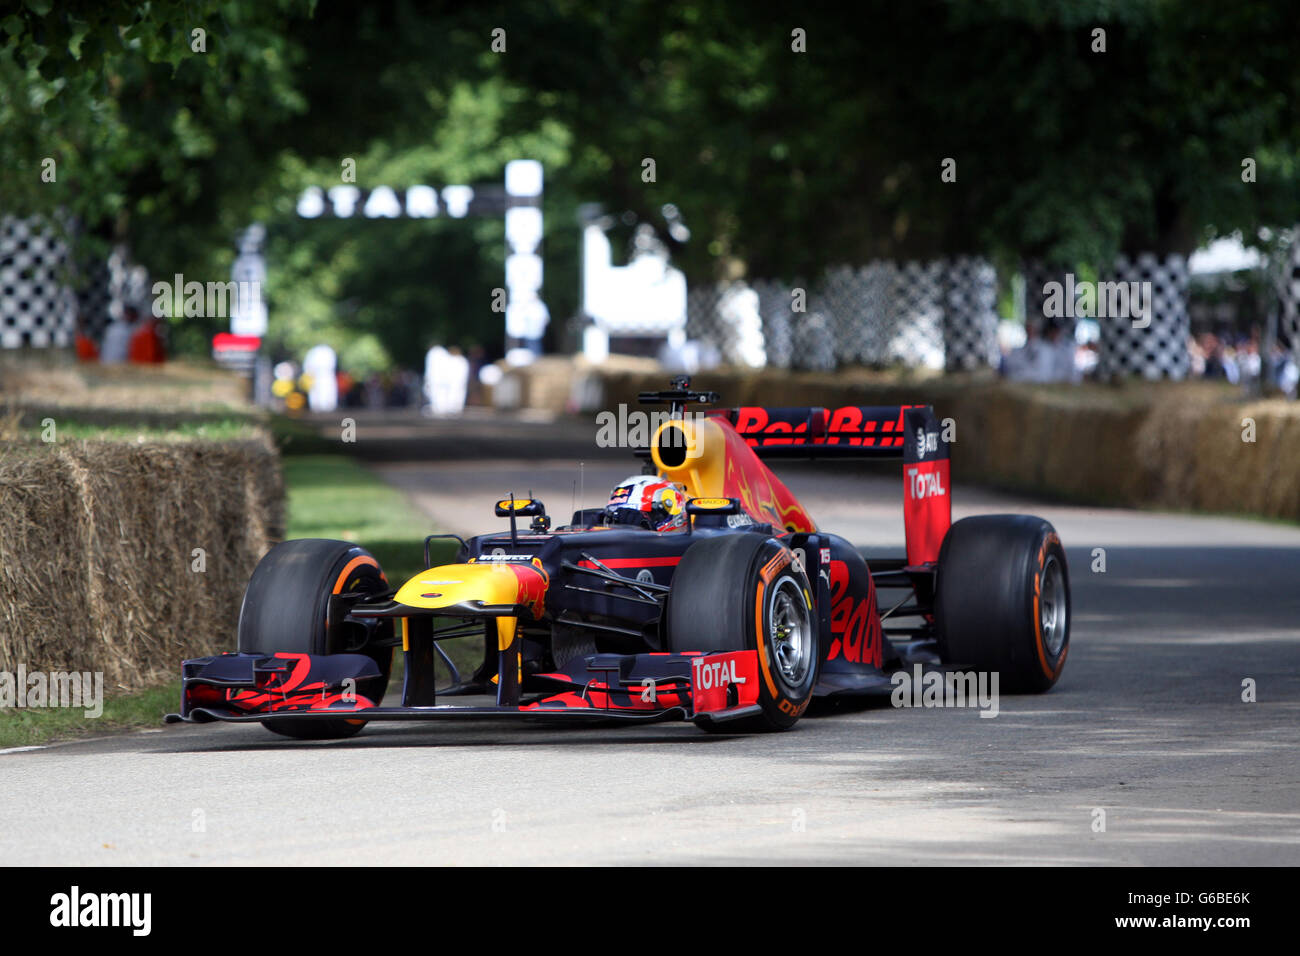 Goodwood West Sussex UK 24th June 2016 Red Bull F1 Car